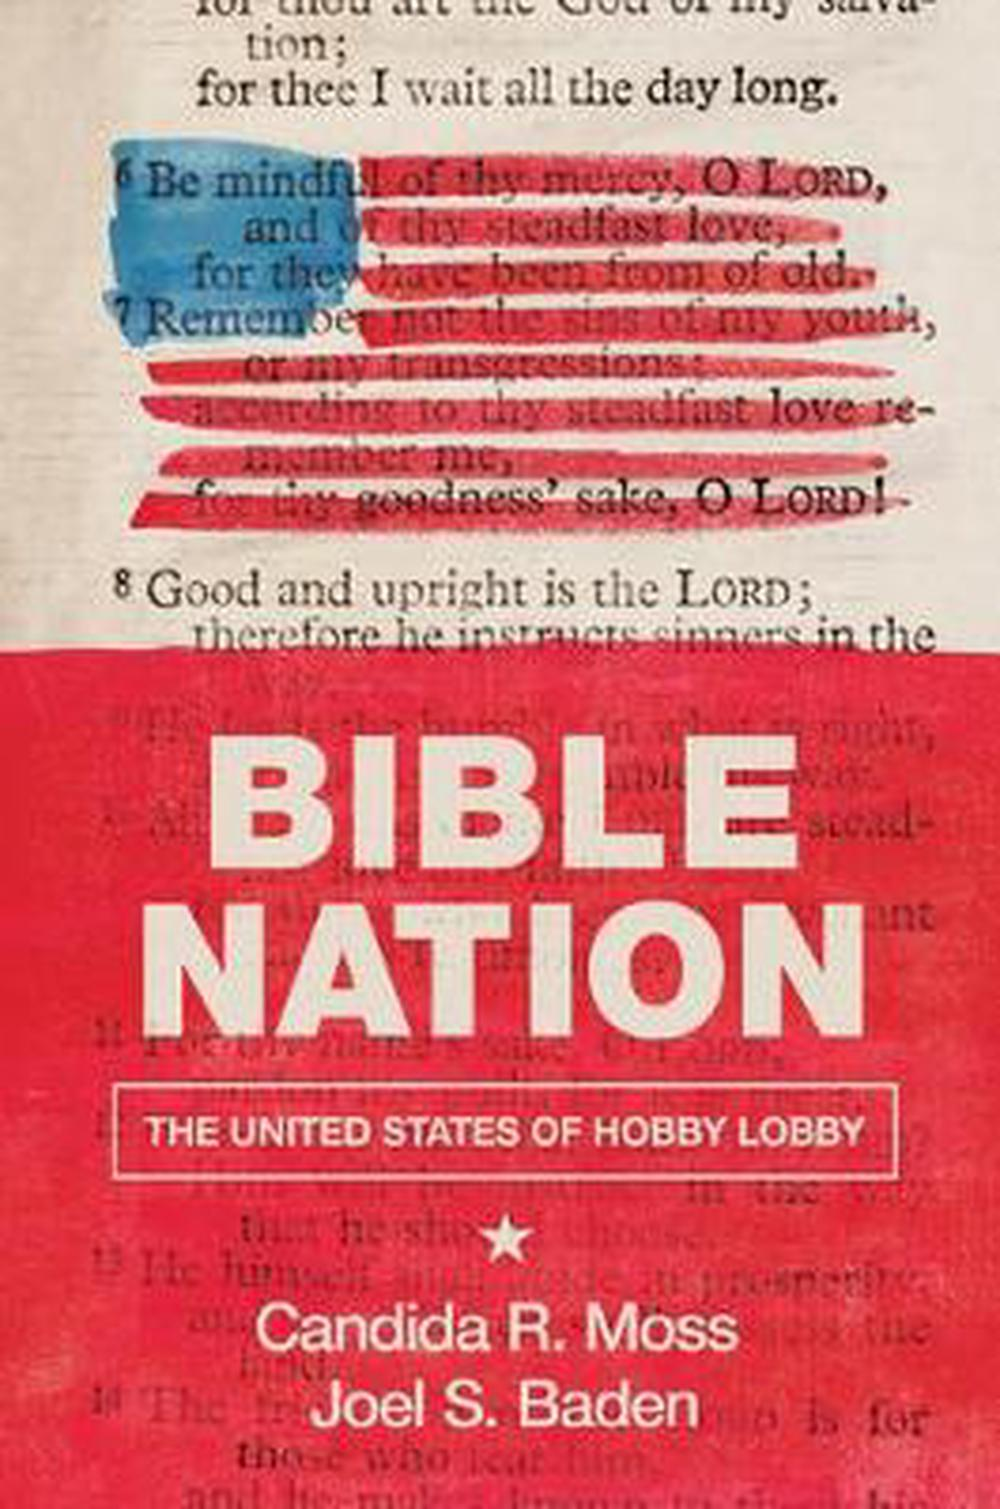 Bible NationThe United States of Hobby Lobby